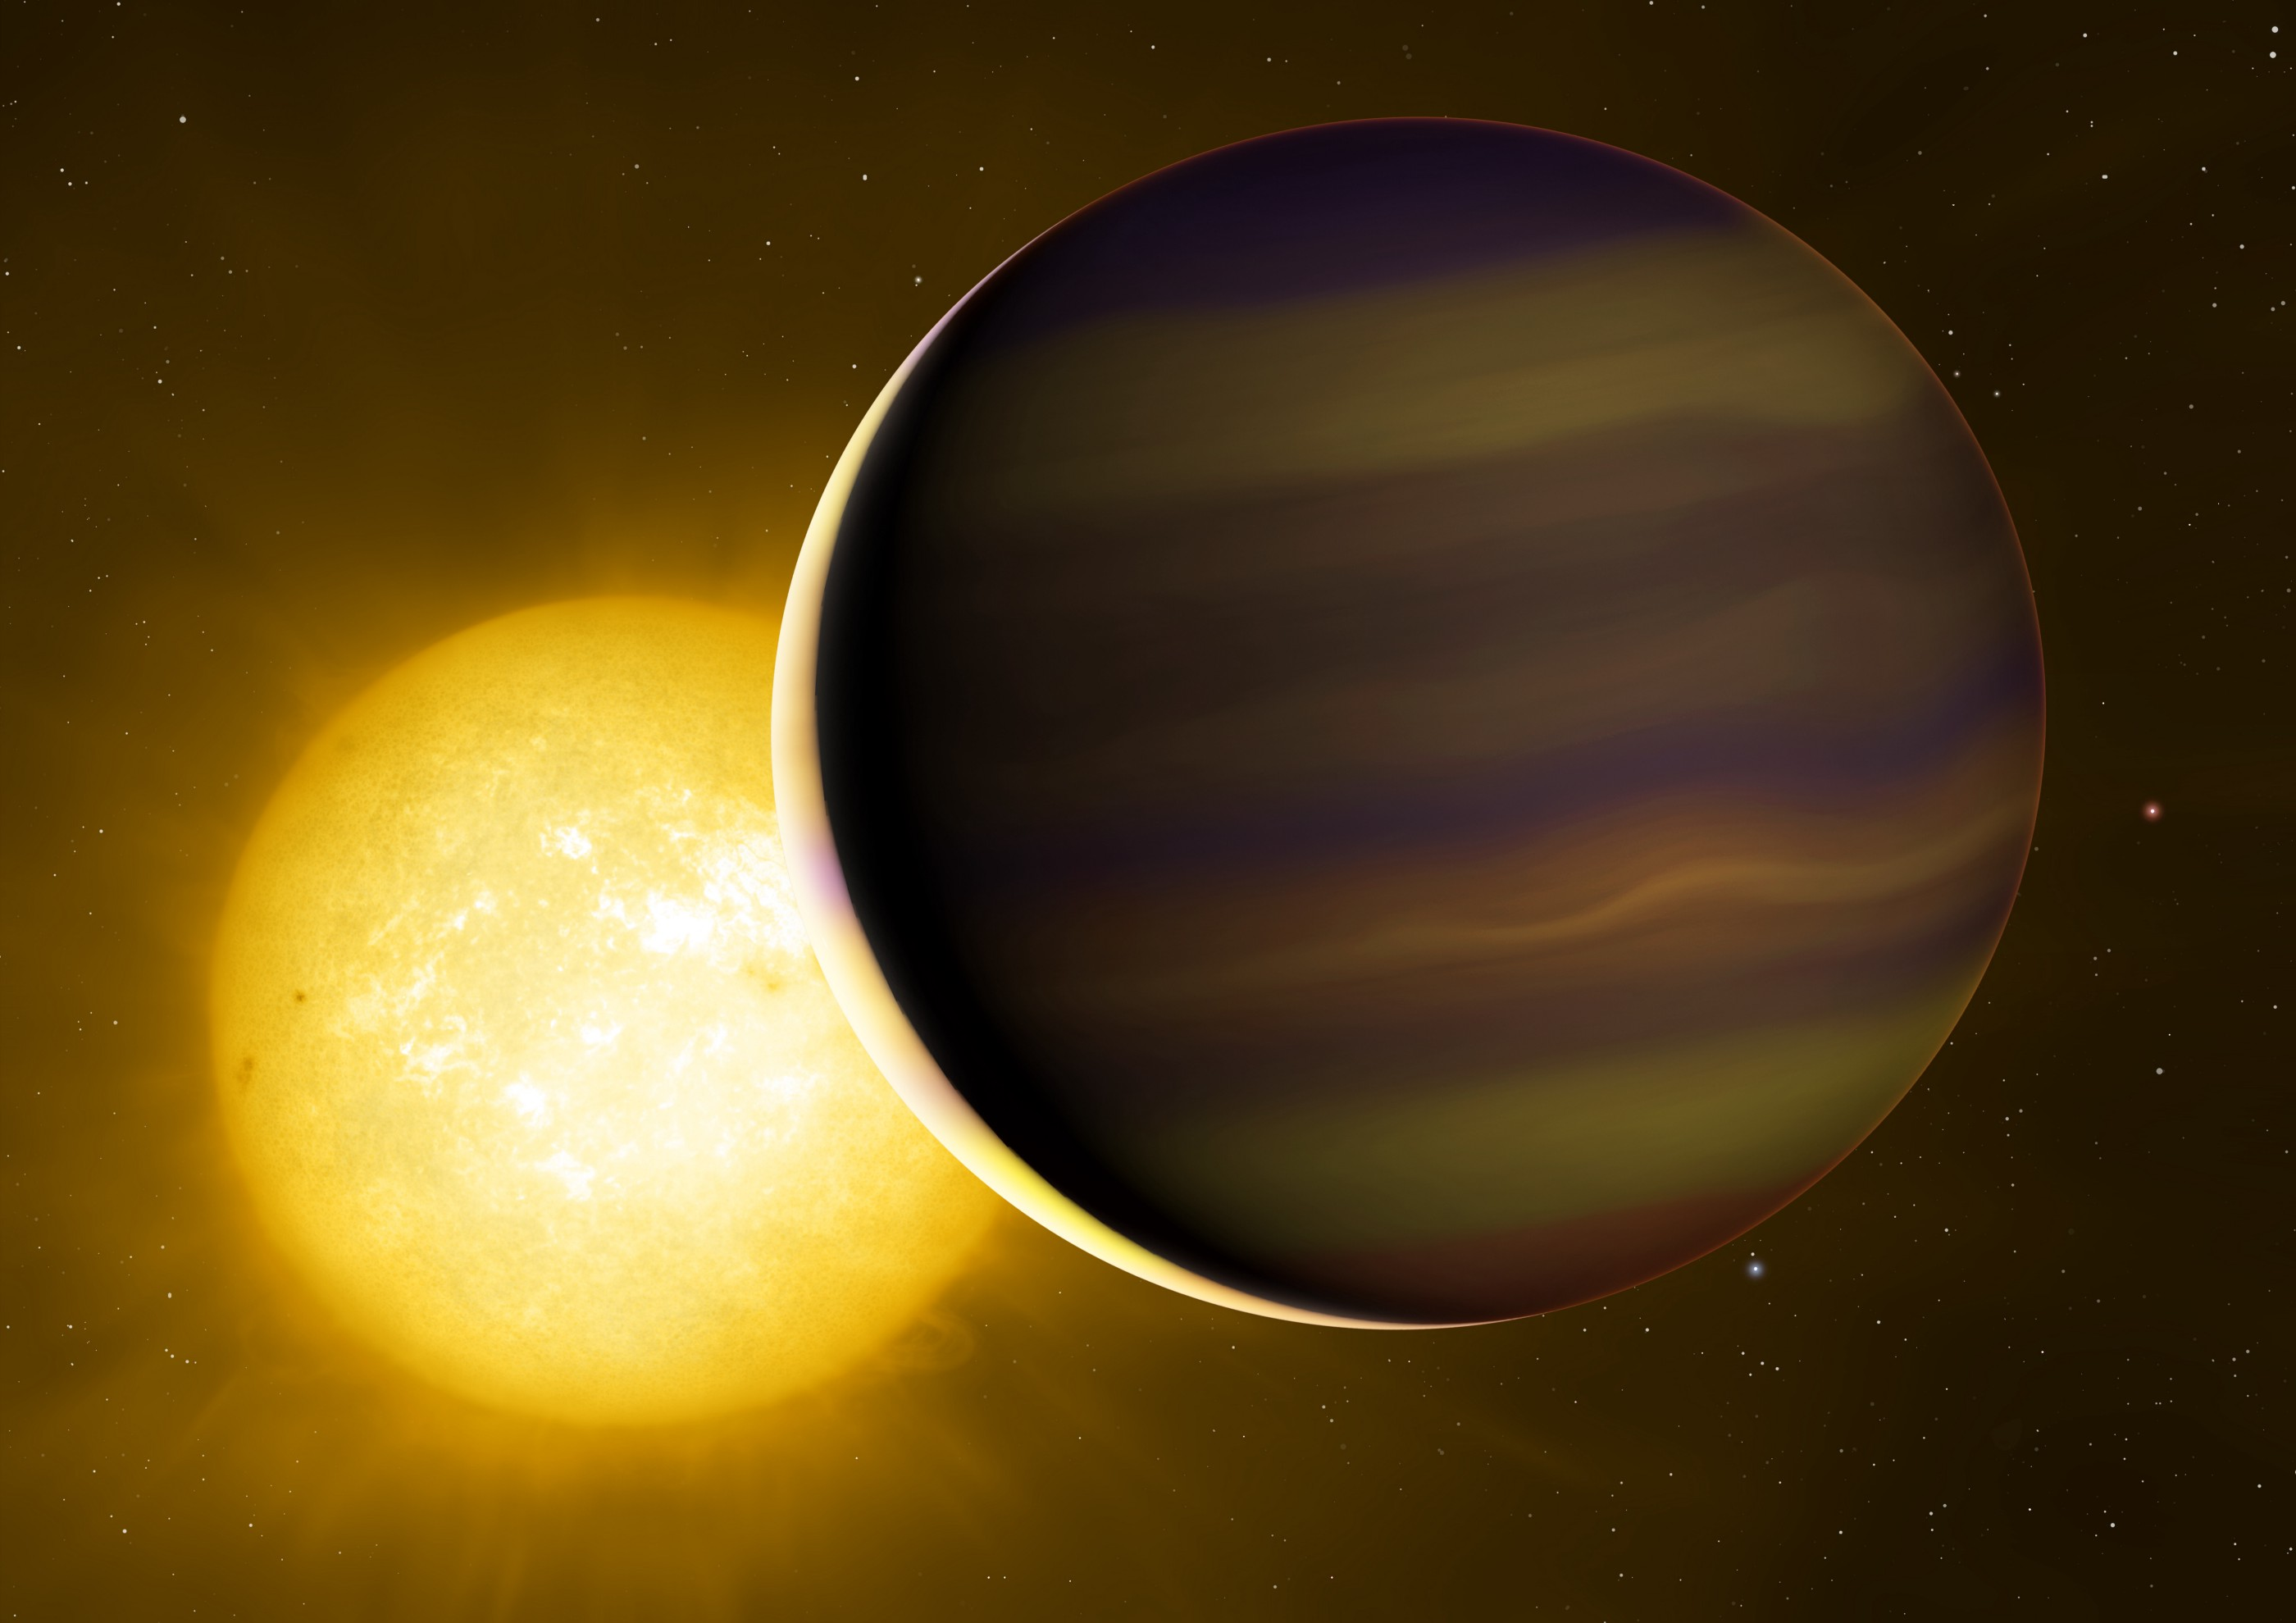 Artist's impression of a hot Jupiter exoplanet transiting in front of a yellow star, with the trailing edge of the planet's atmosphere lit by the starlight.